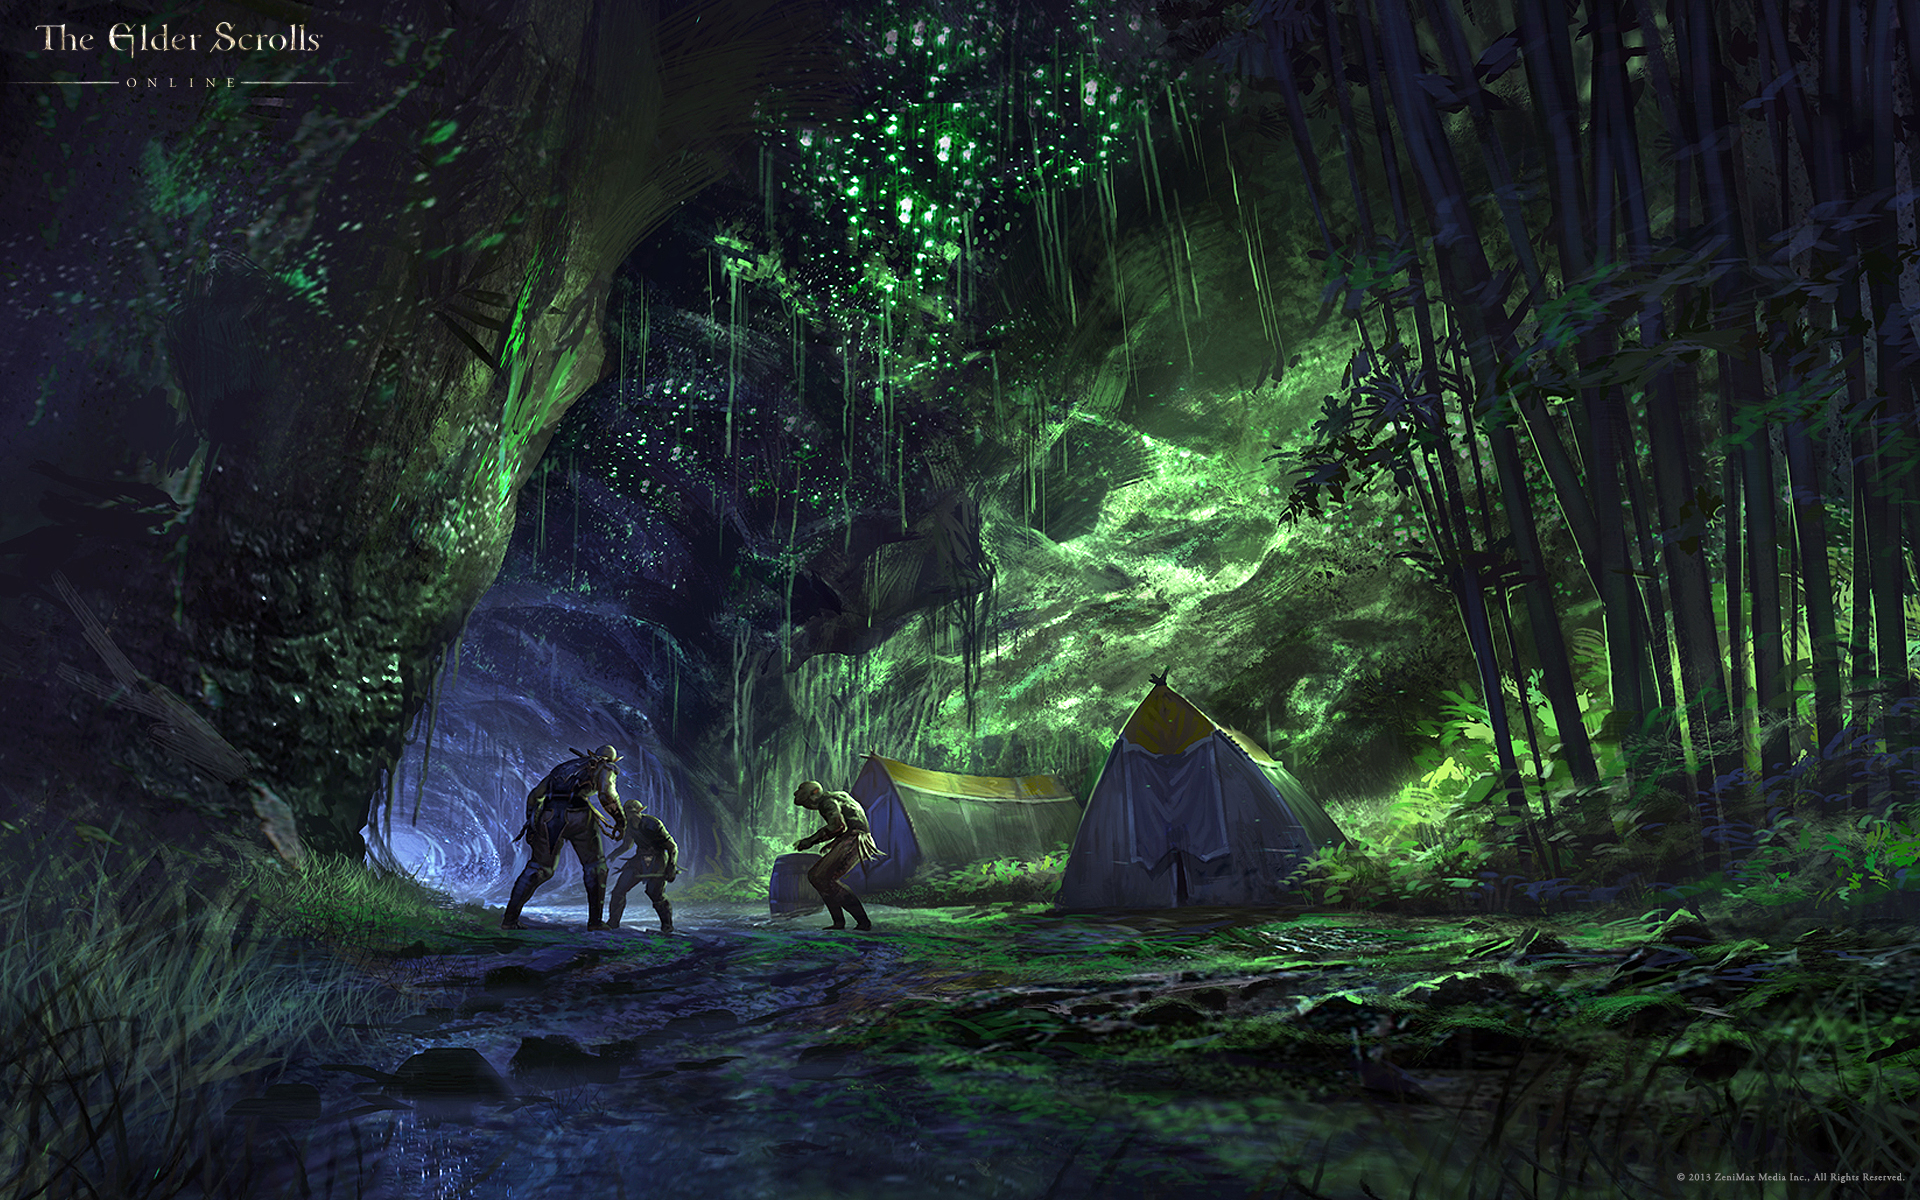 Wallpaper The Elder Scrolls Online: Toothmaul Gully